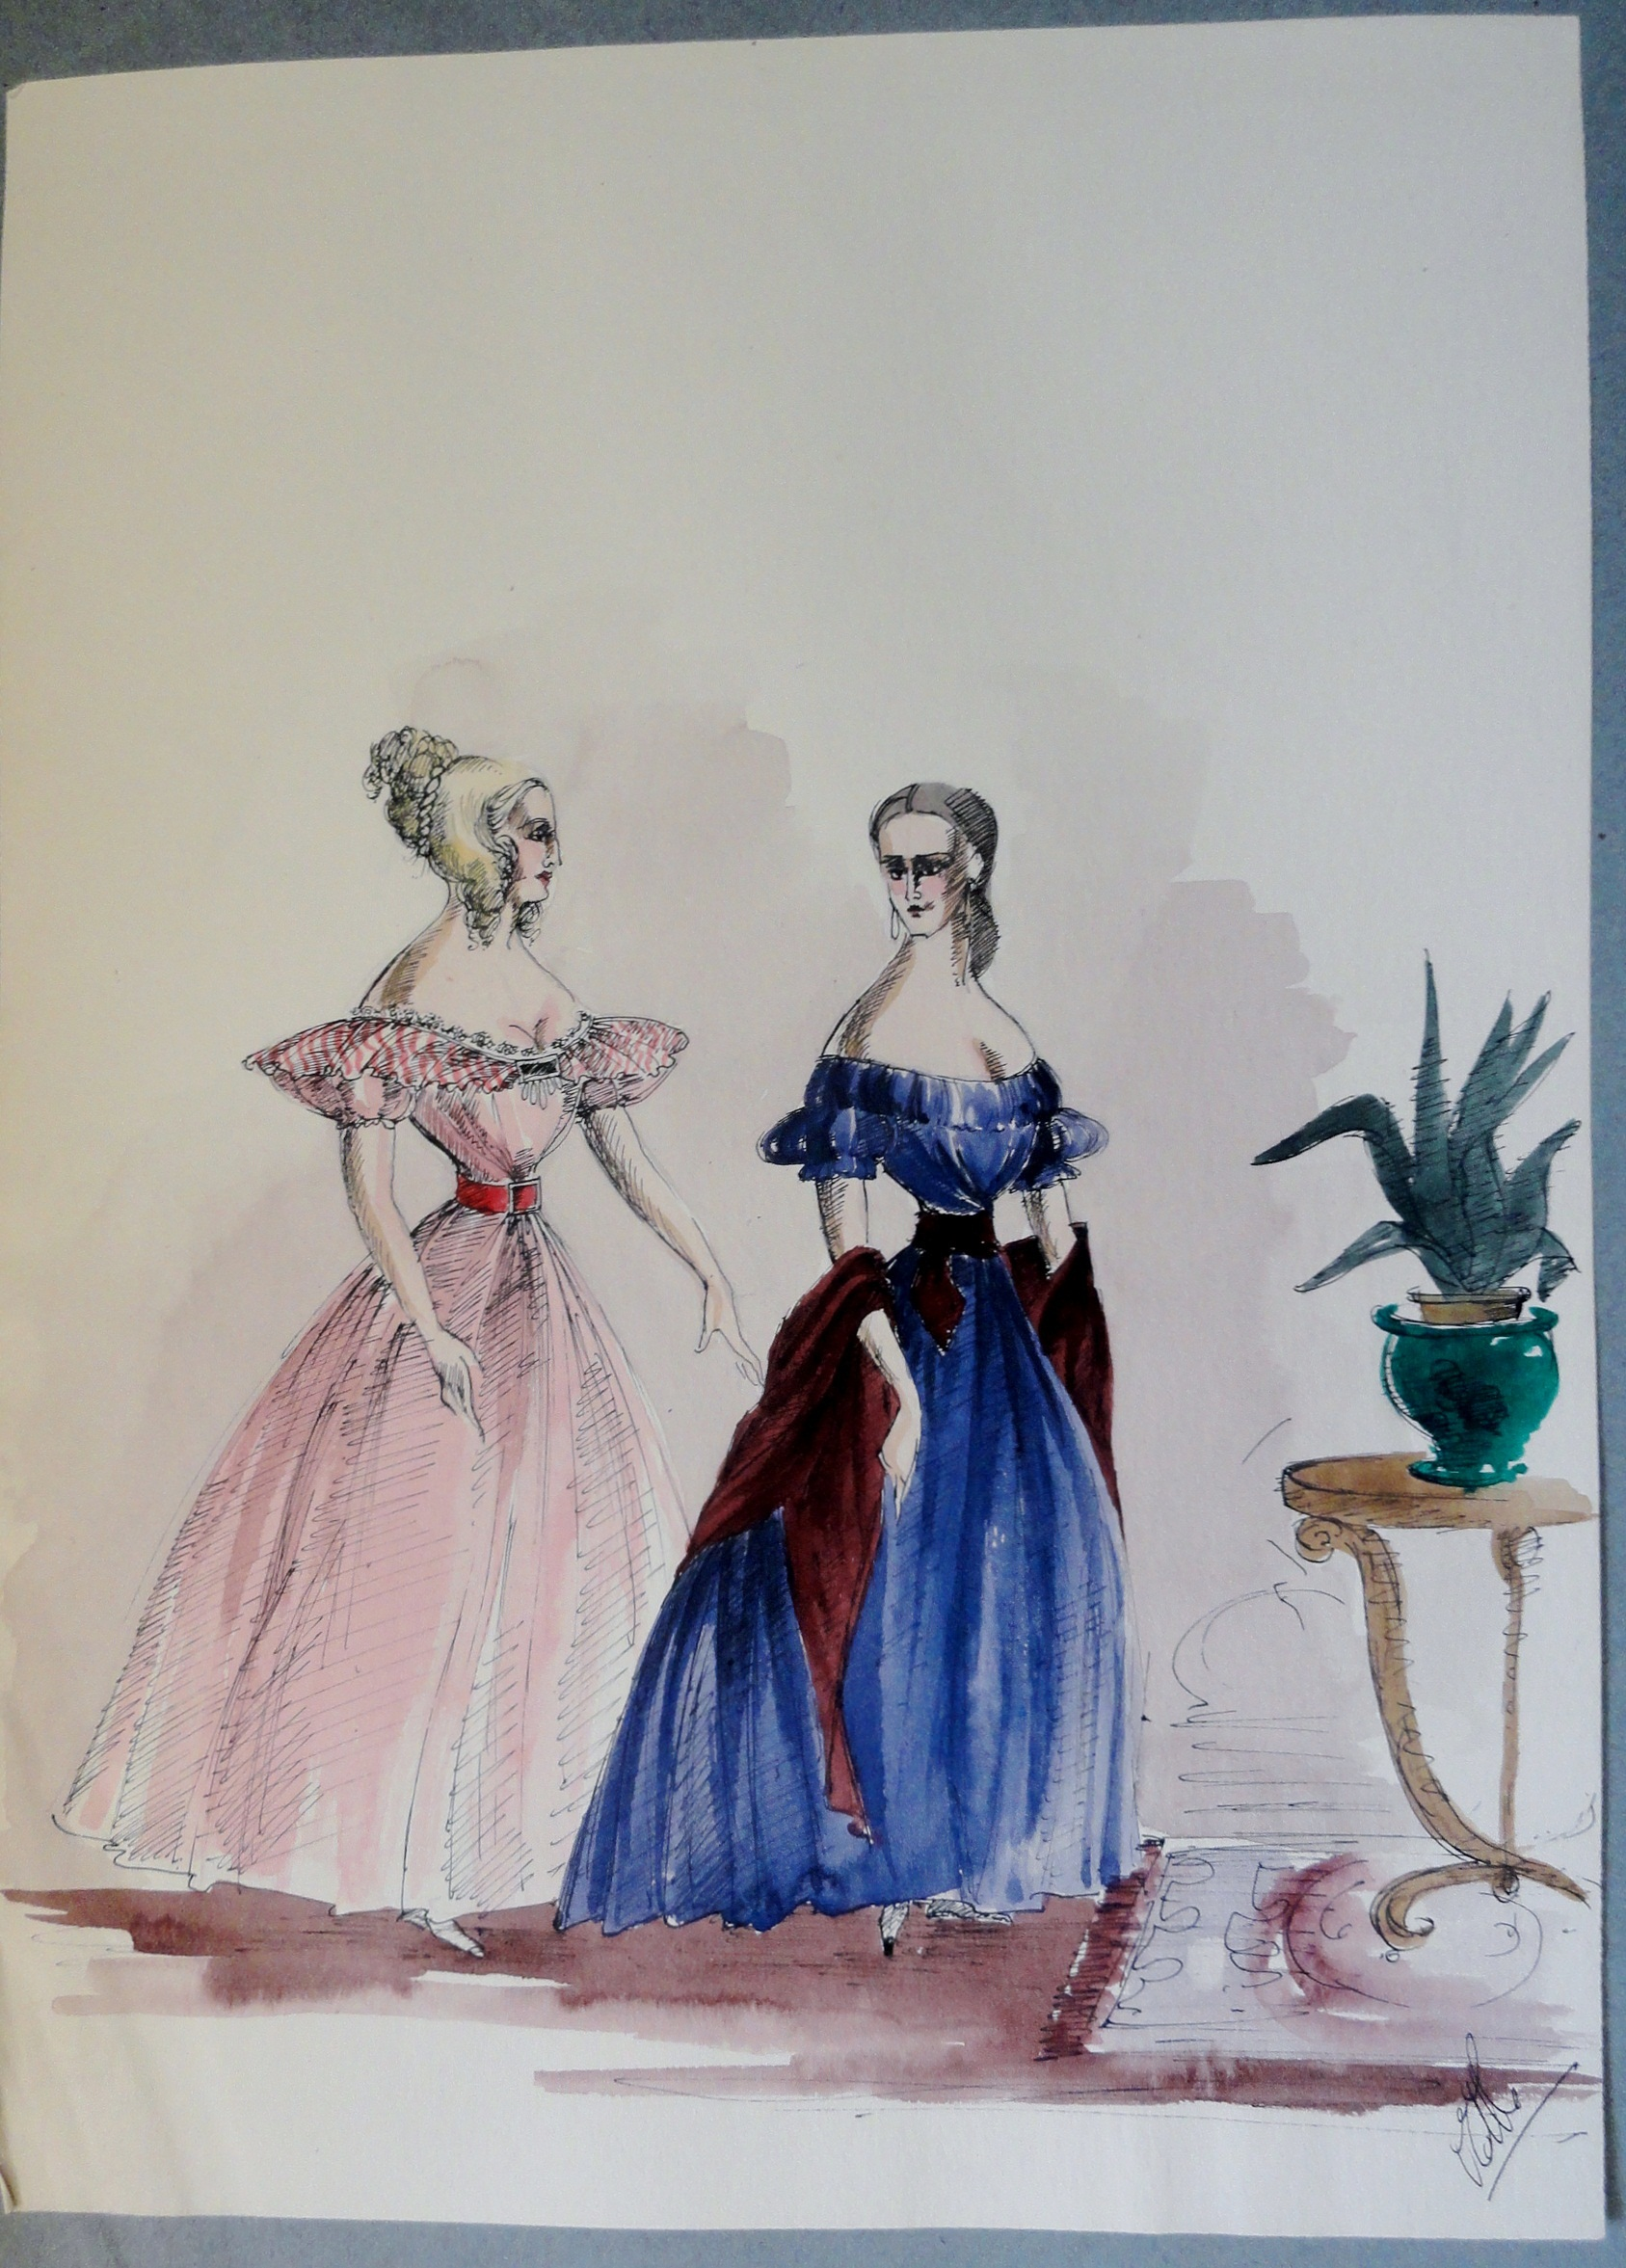 Rachel and sister in pink and blue gowns. Pen and Ink and Watercolor. From the Rachel Portfolio by Owen Hyde Clark.